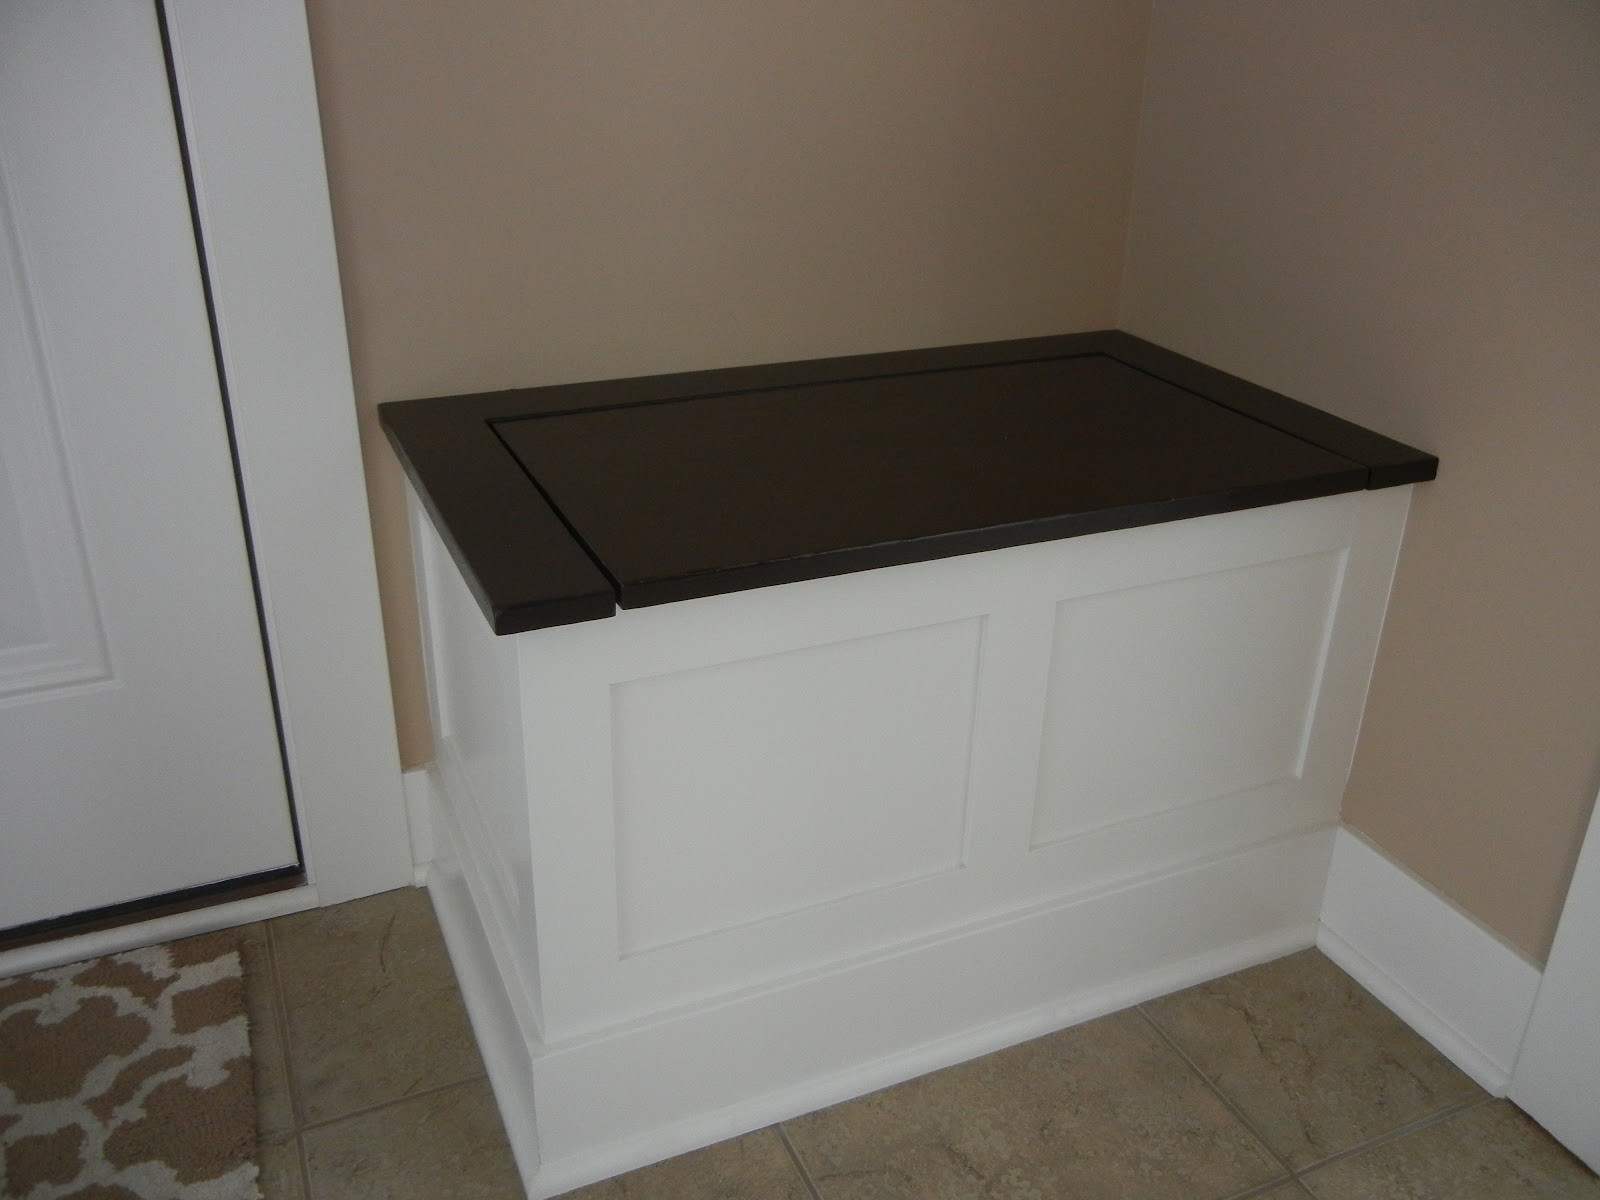 Best ideas about DIY Storage Bench . Save or Pin Hammers and High Heels Project Feature Holly & Brian s Now.